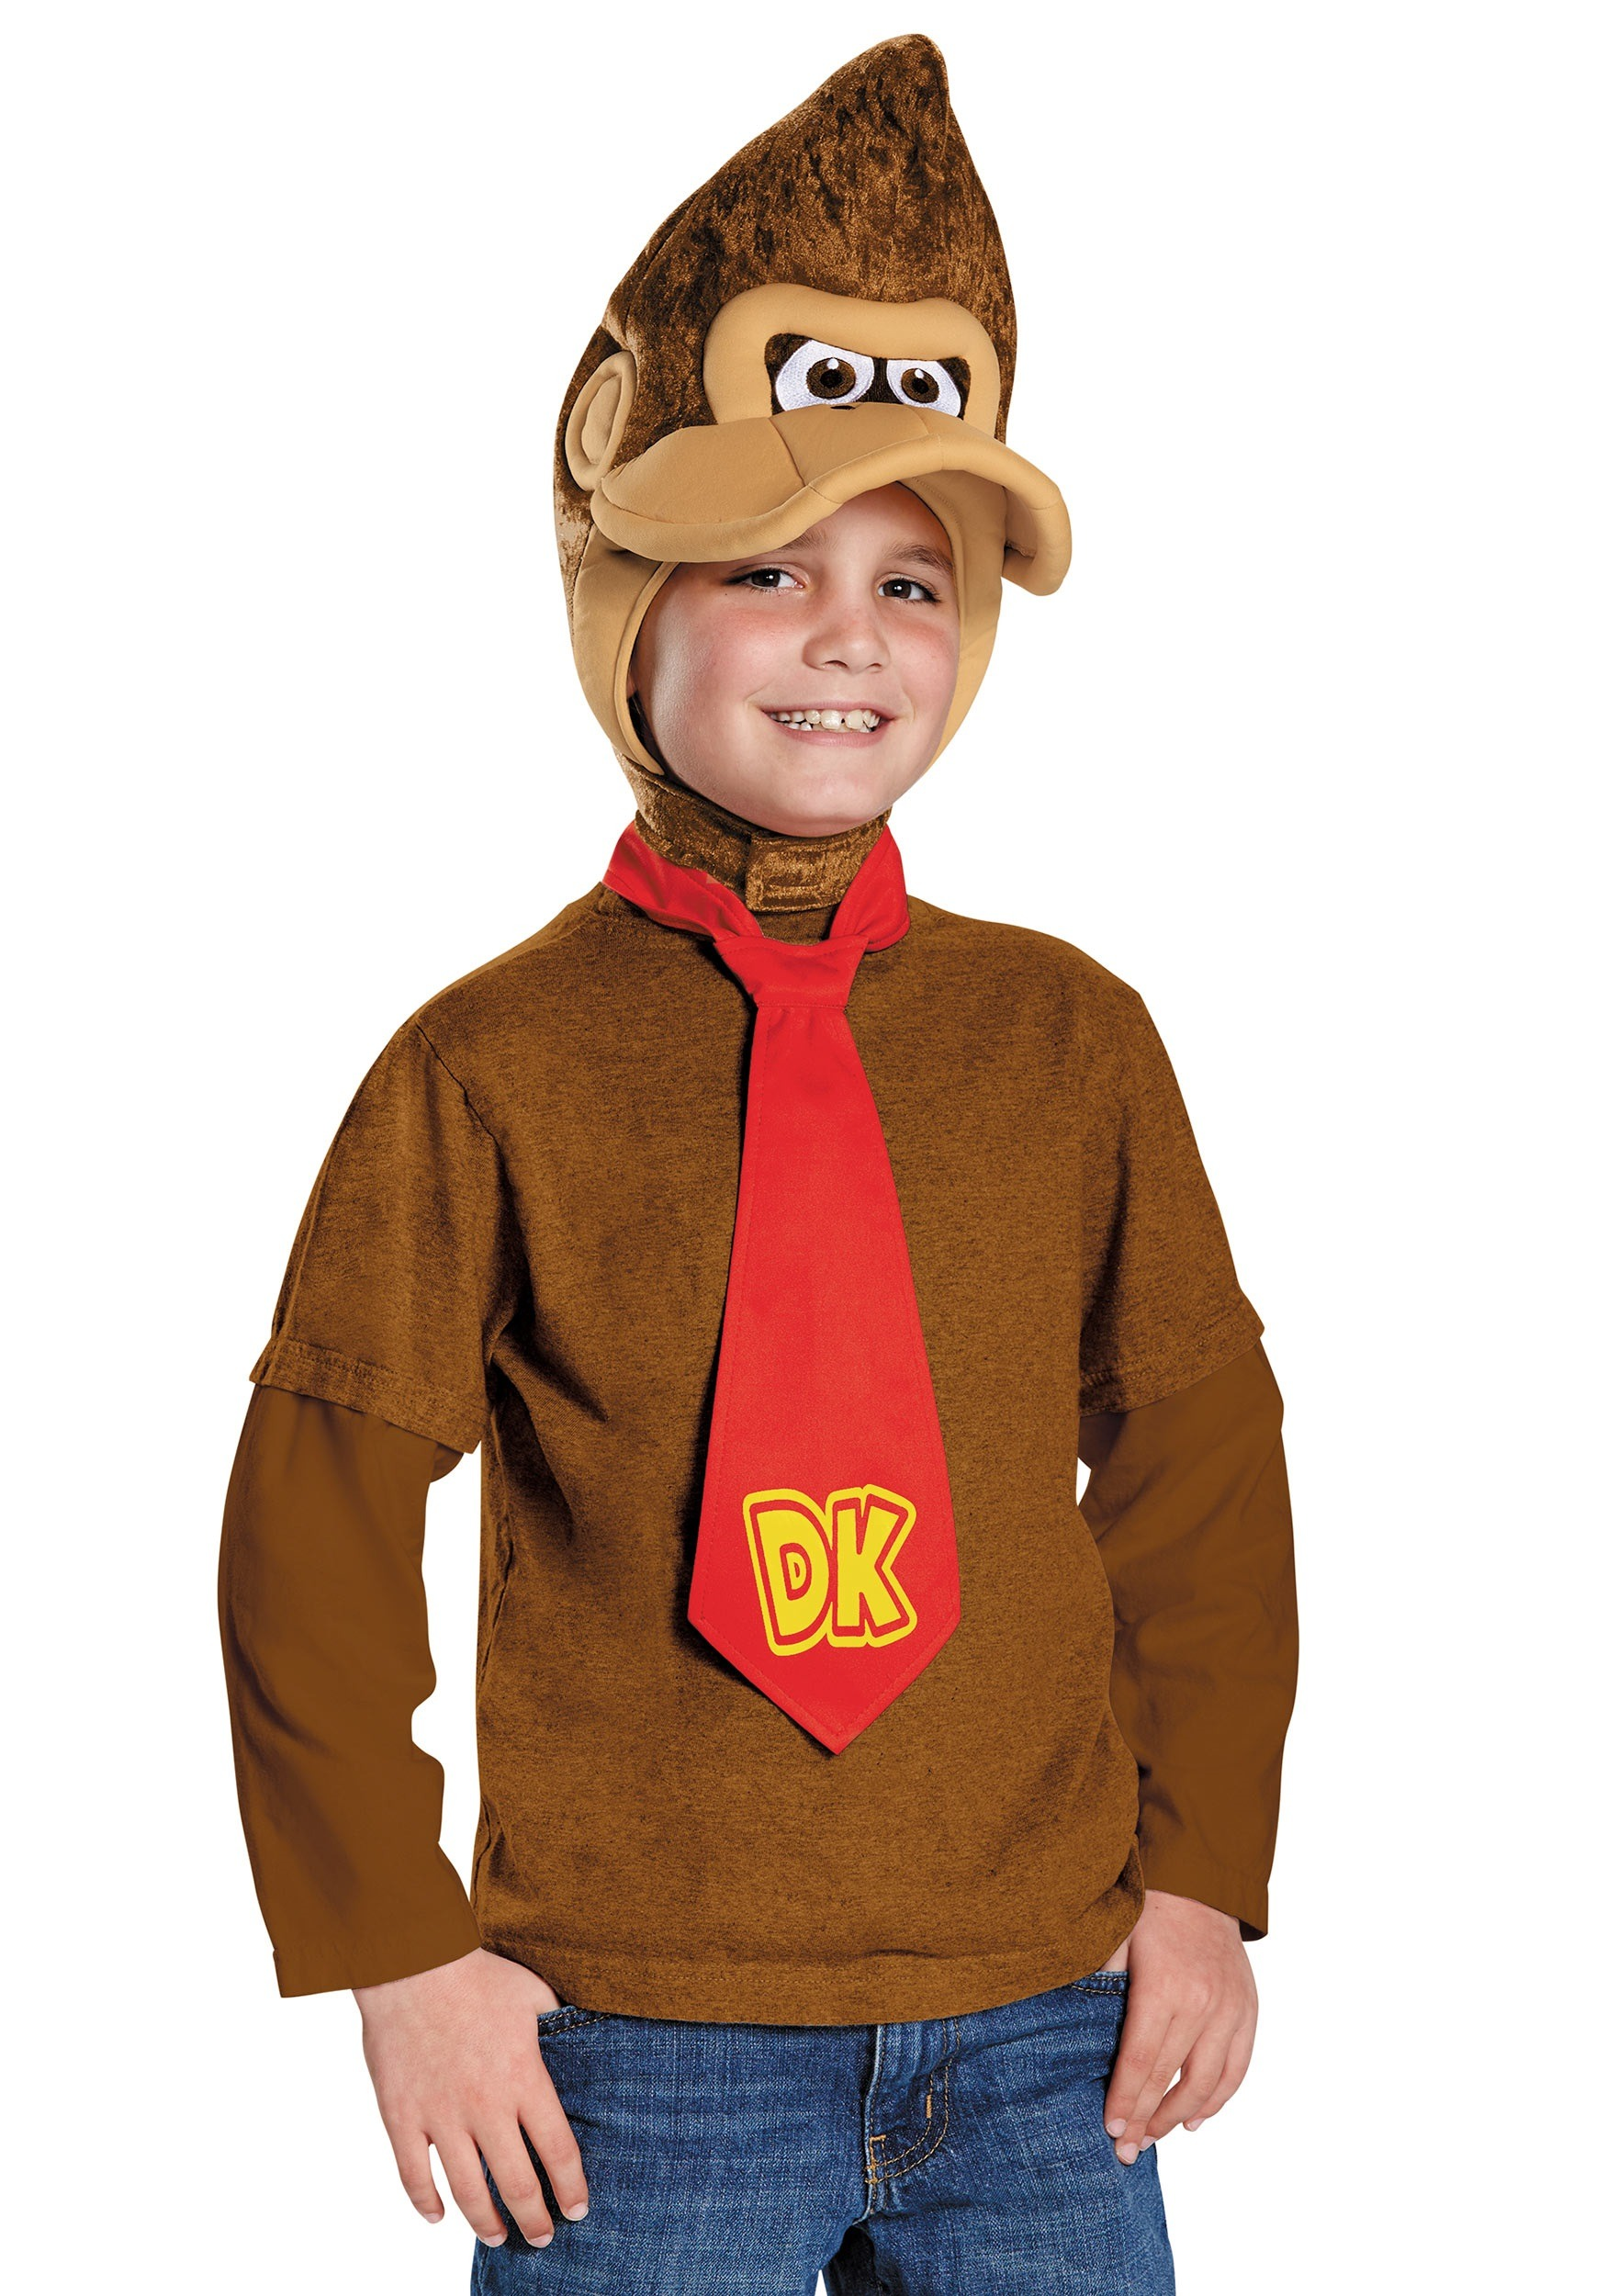 Kids Video Game Costumes